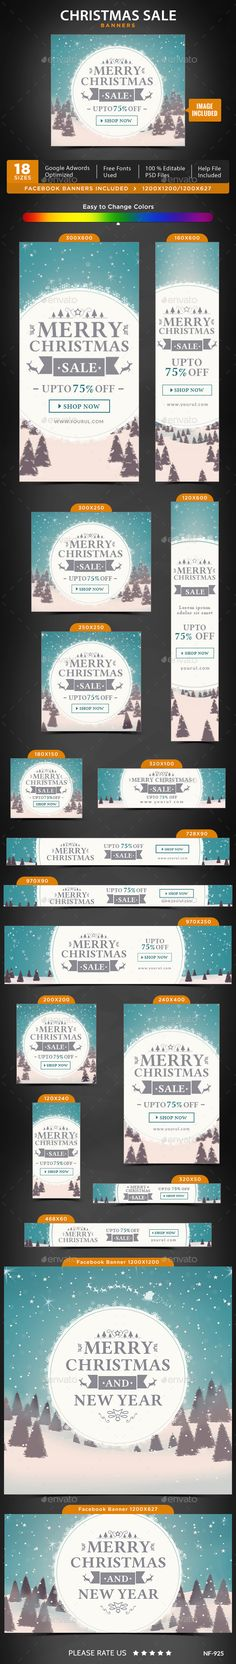 Buy Christmas Sale Banners by Hyov on GraphicRiver. Promote your Products and services with this great looking Banner Set. Banner Template, Christmas Design, Christmas Sale, Scandinavian Kids Rooms, Home Buying Process, Display Ads, Web Design Trends, Facebook Timeline Covers, Sale Banner